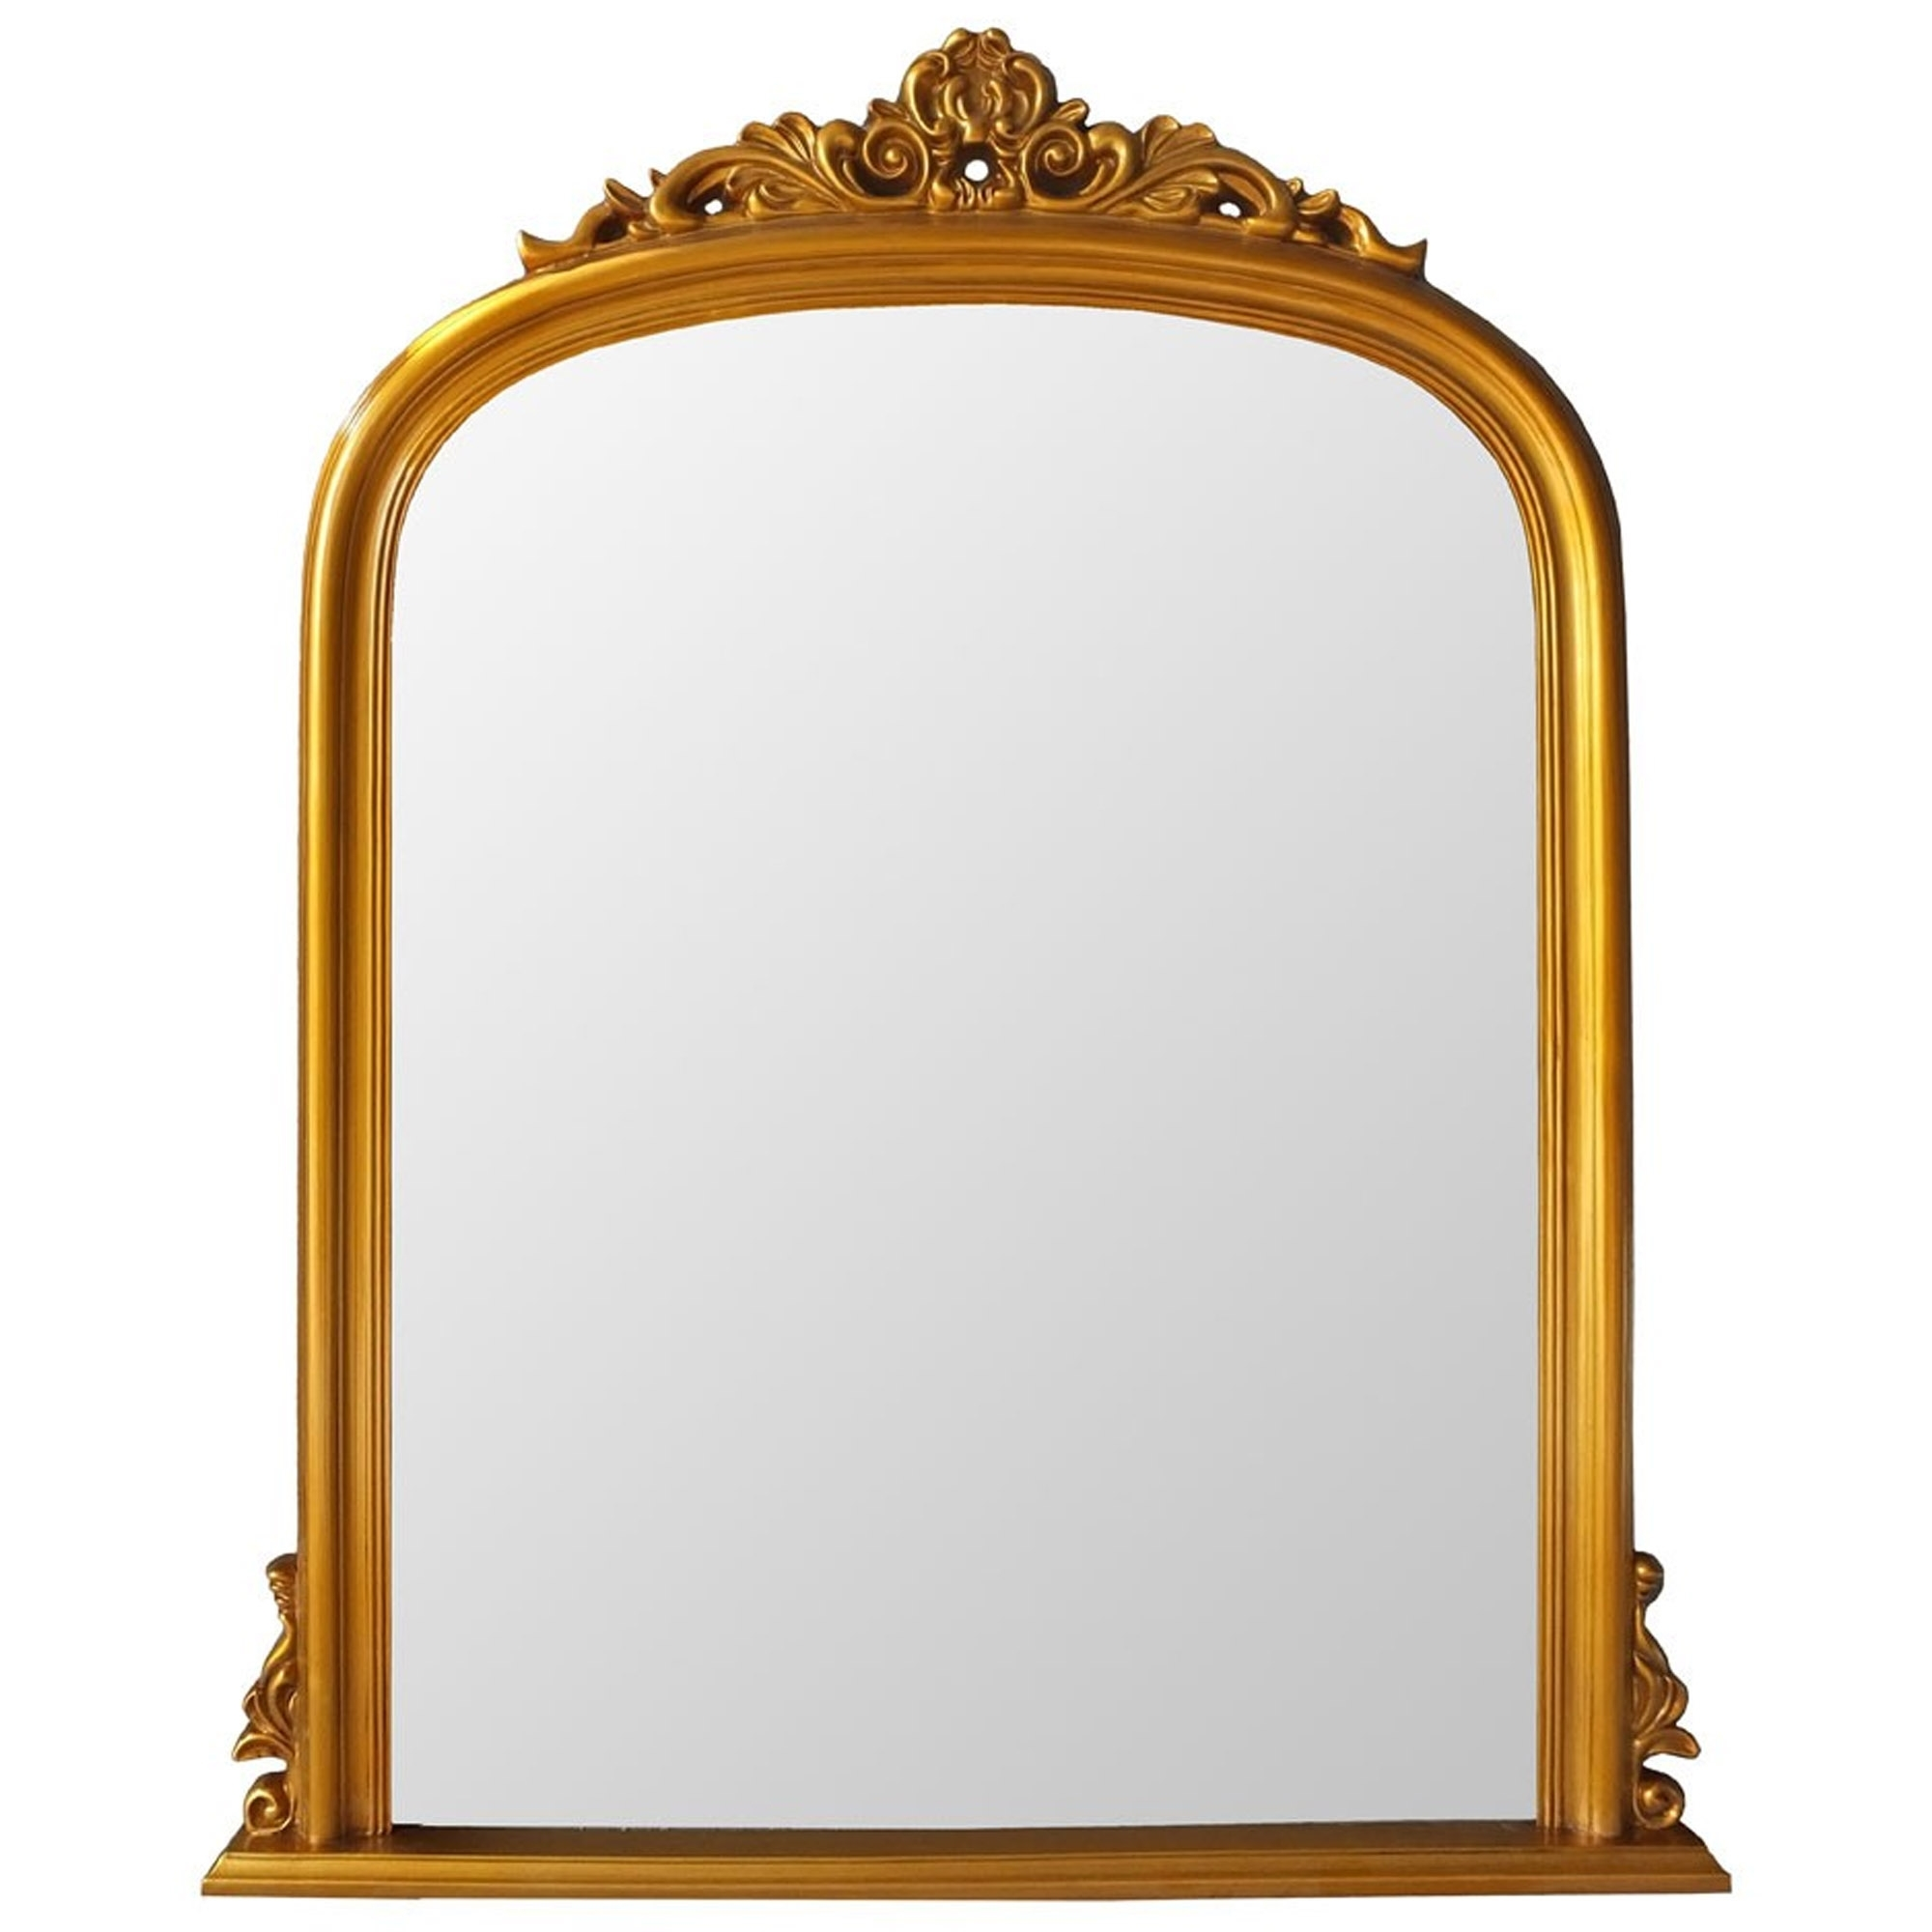 Antique French Style Gold Henrietta Wall Mirror | Wall ...